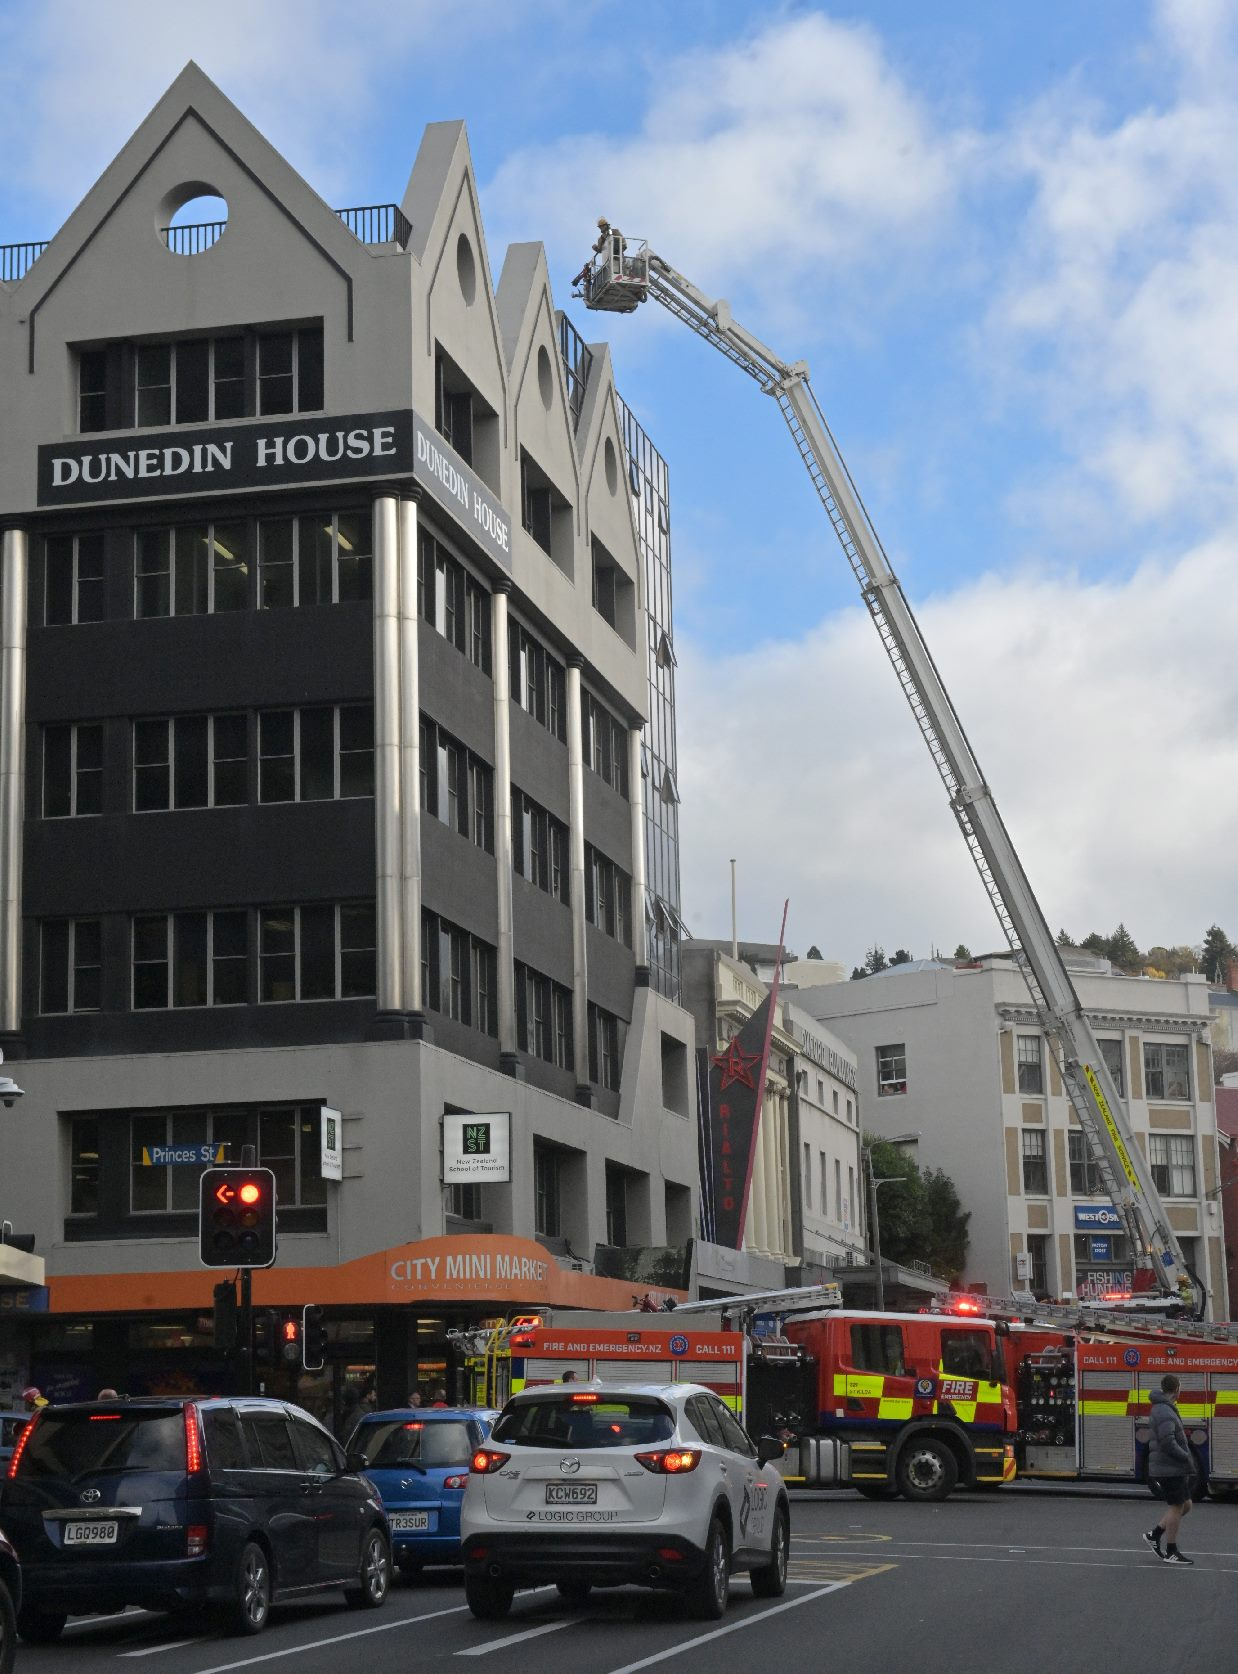 Firefighters were called to a blaze in Central Dunedin. Photo: Linda Robertson